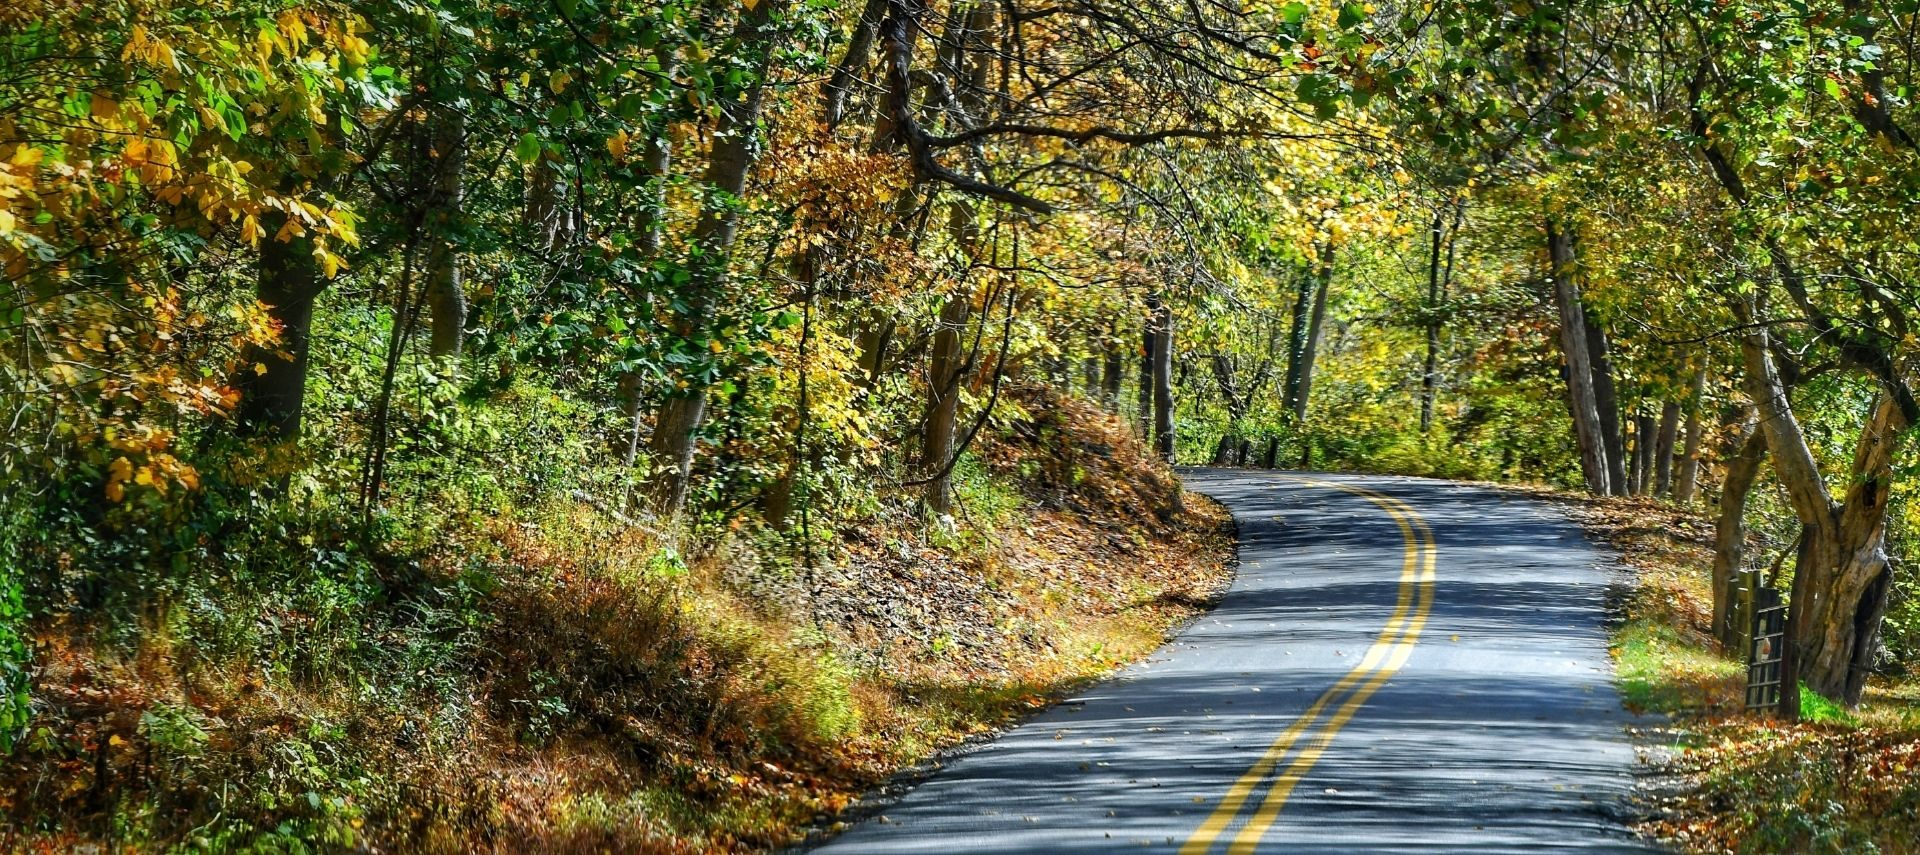 Winding road surrounded by colorful trees in the fall